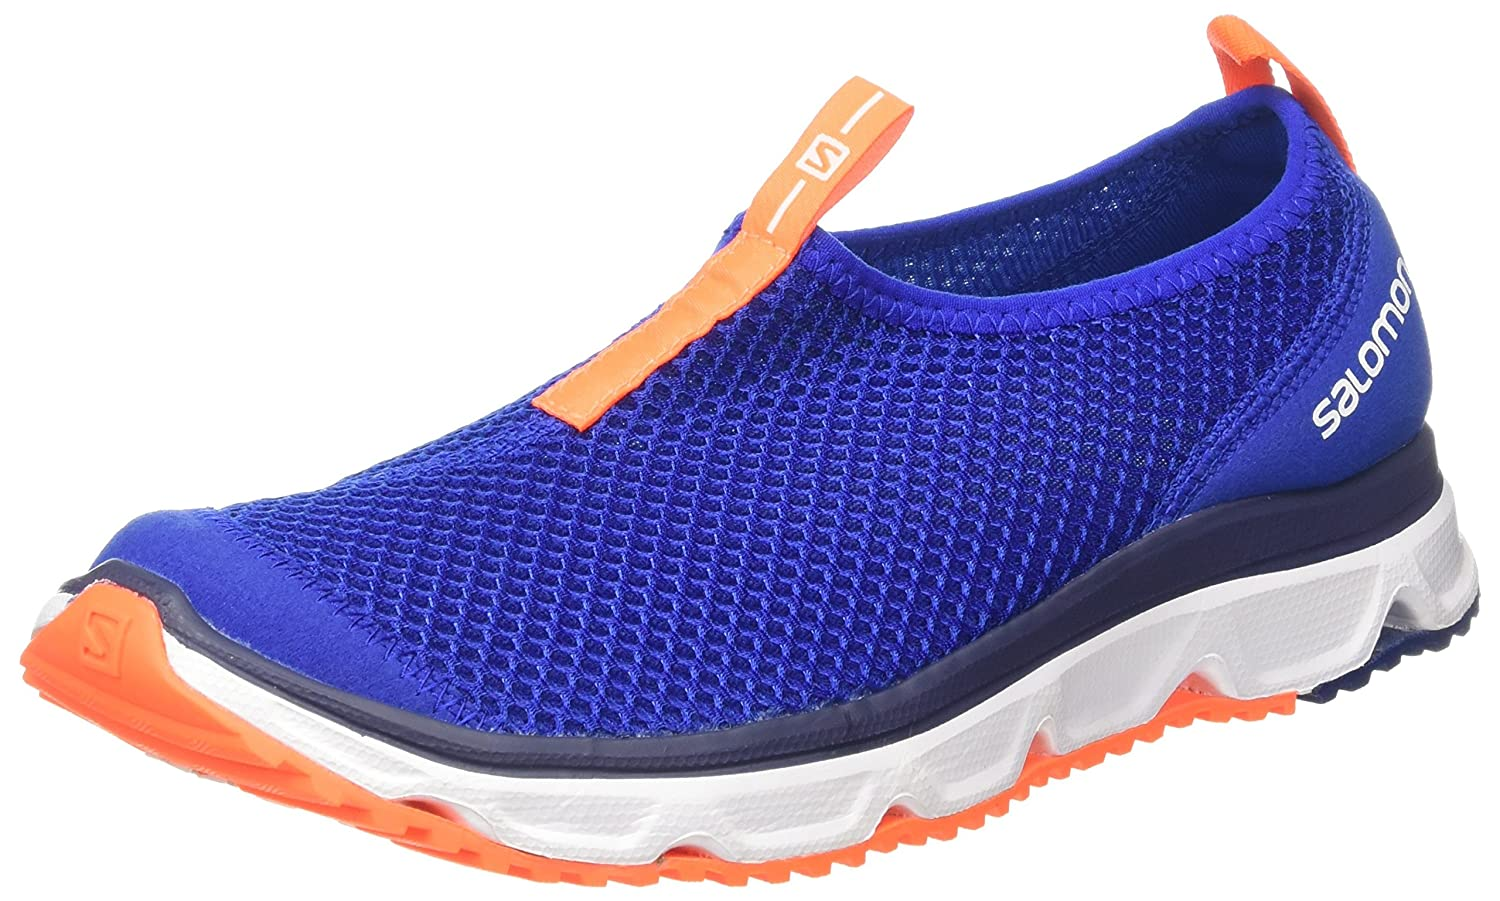 Salomon RX Moc 3.0, Zapatillas de Senderismo para Hombre 48 EU|Azul (Surf The Web / White / Shocking Orange 000)